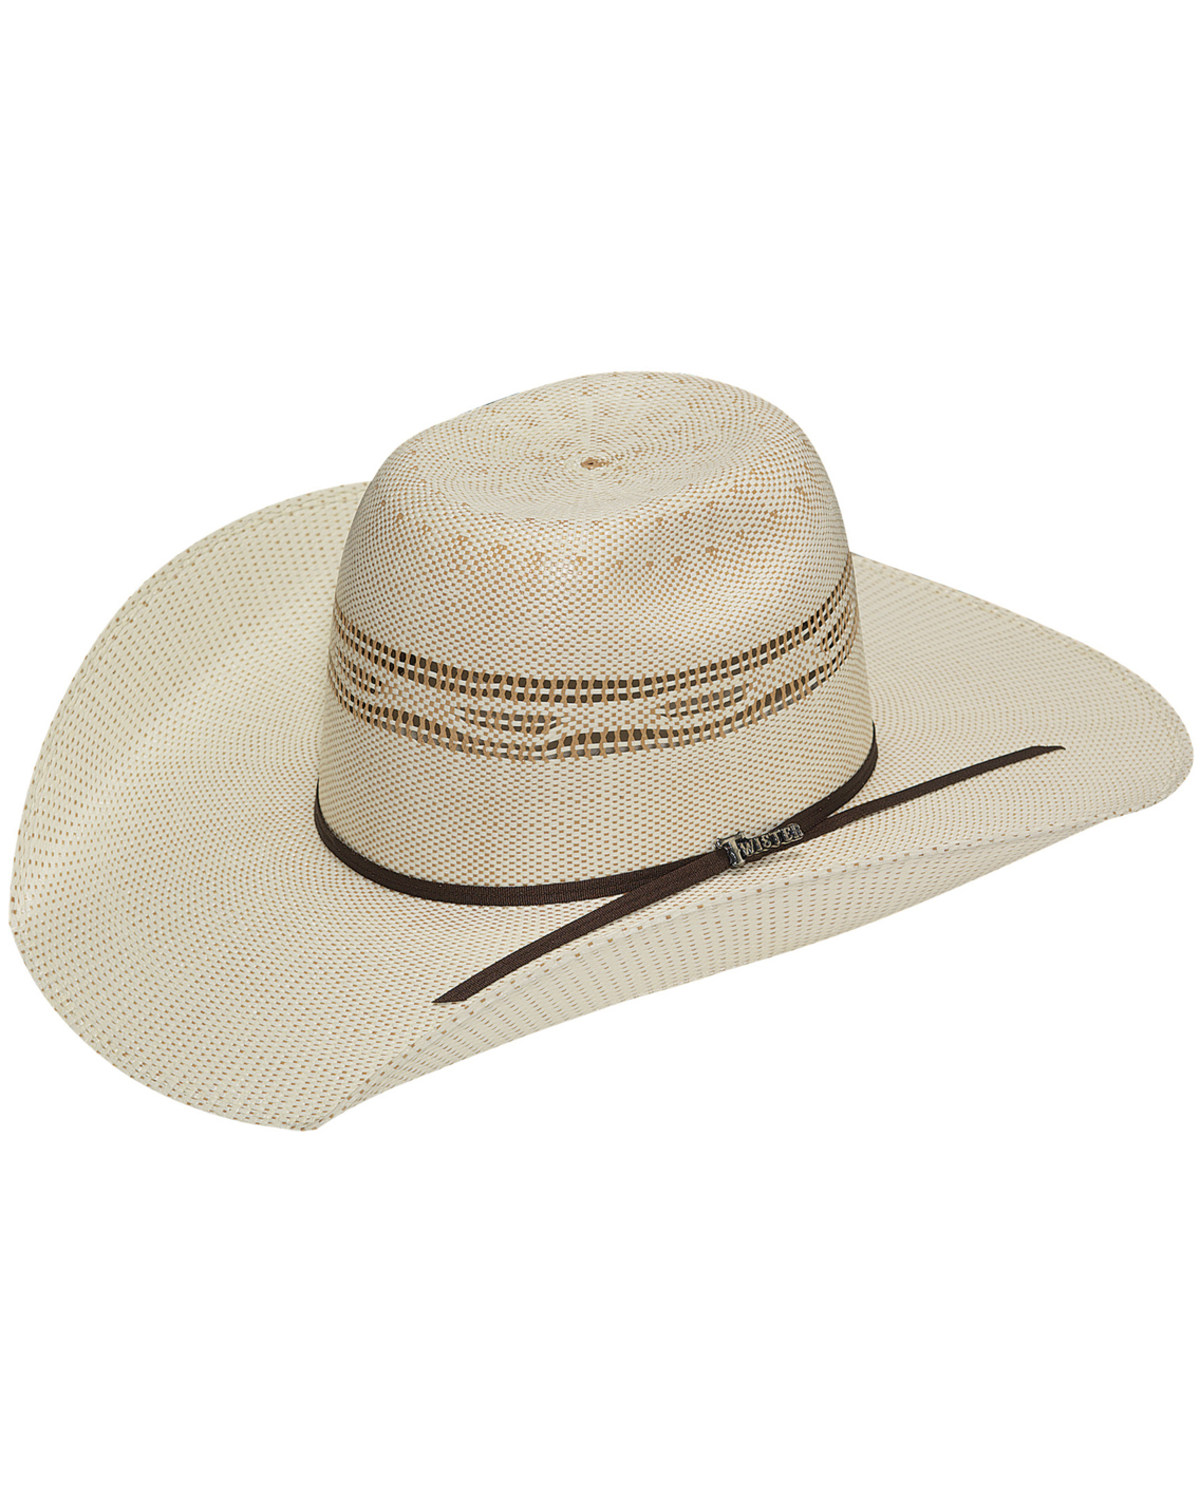 Twister Men s Bangora Straw Cowboy Hat  eb1498d3704